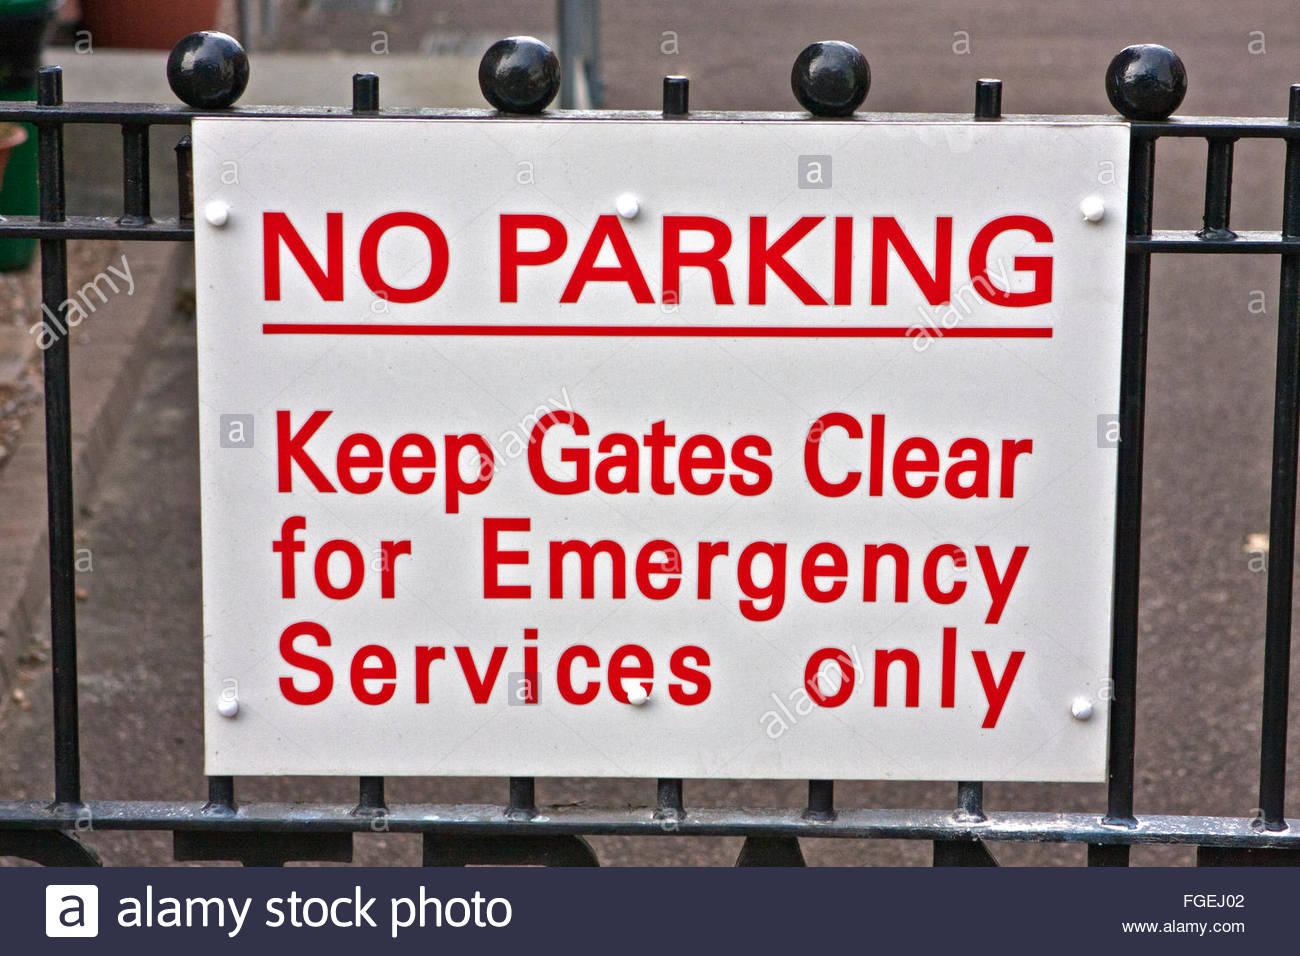 White and red sign on a black wrought iron gate: NO PARKING Keep Gates Clear for Emergency Services only - Stock Image